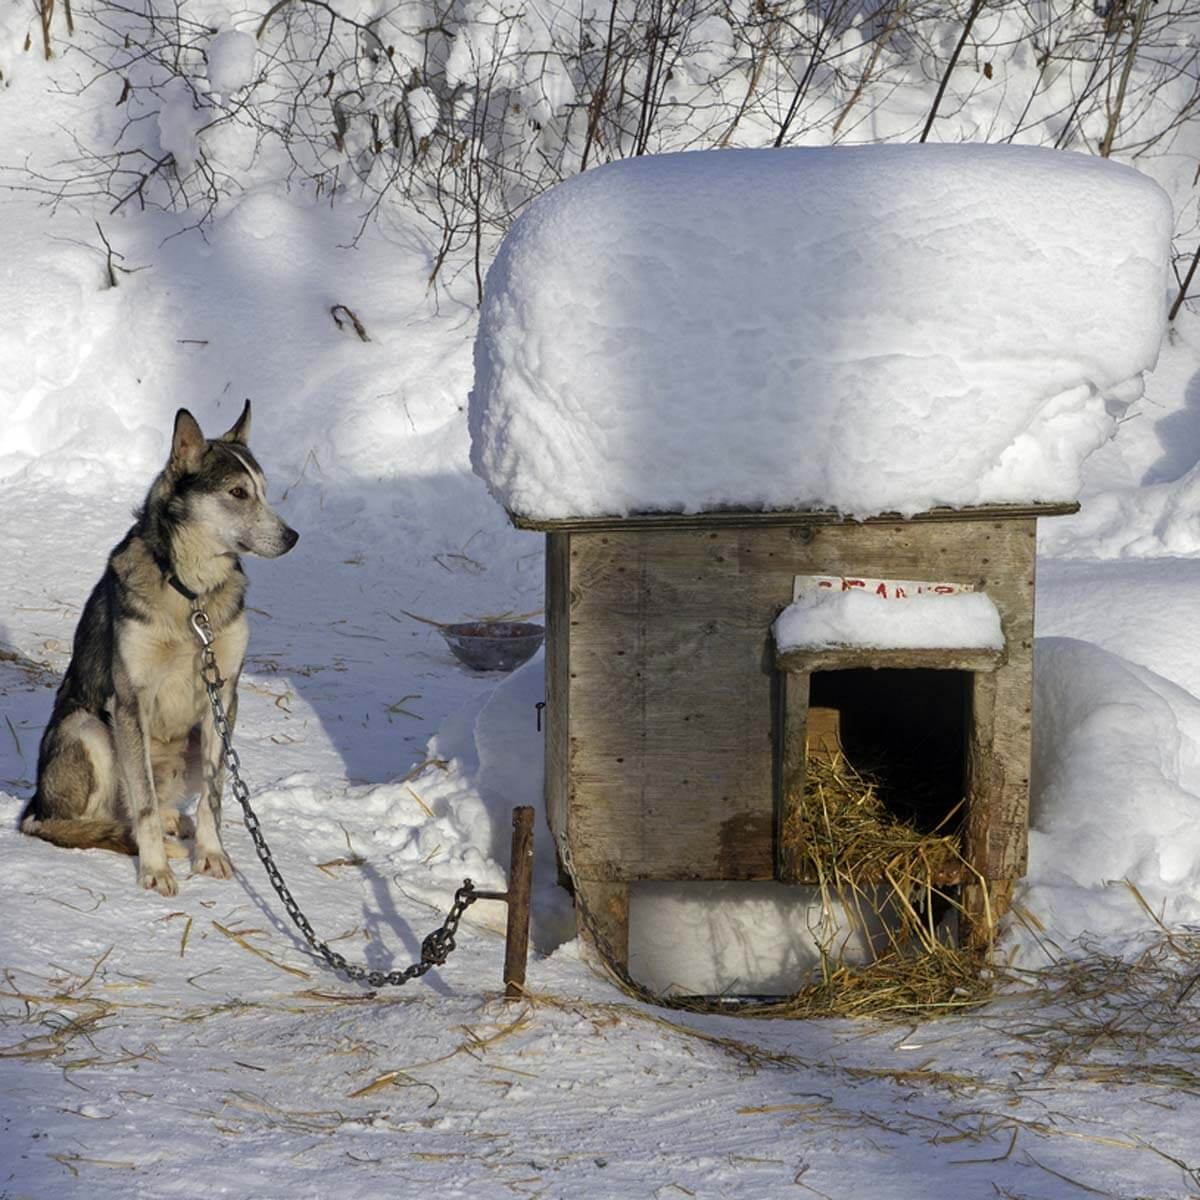 Leaving Dogs Outside In Cold Weather Might Lead To Animal Cruelty